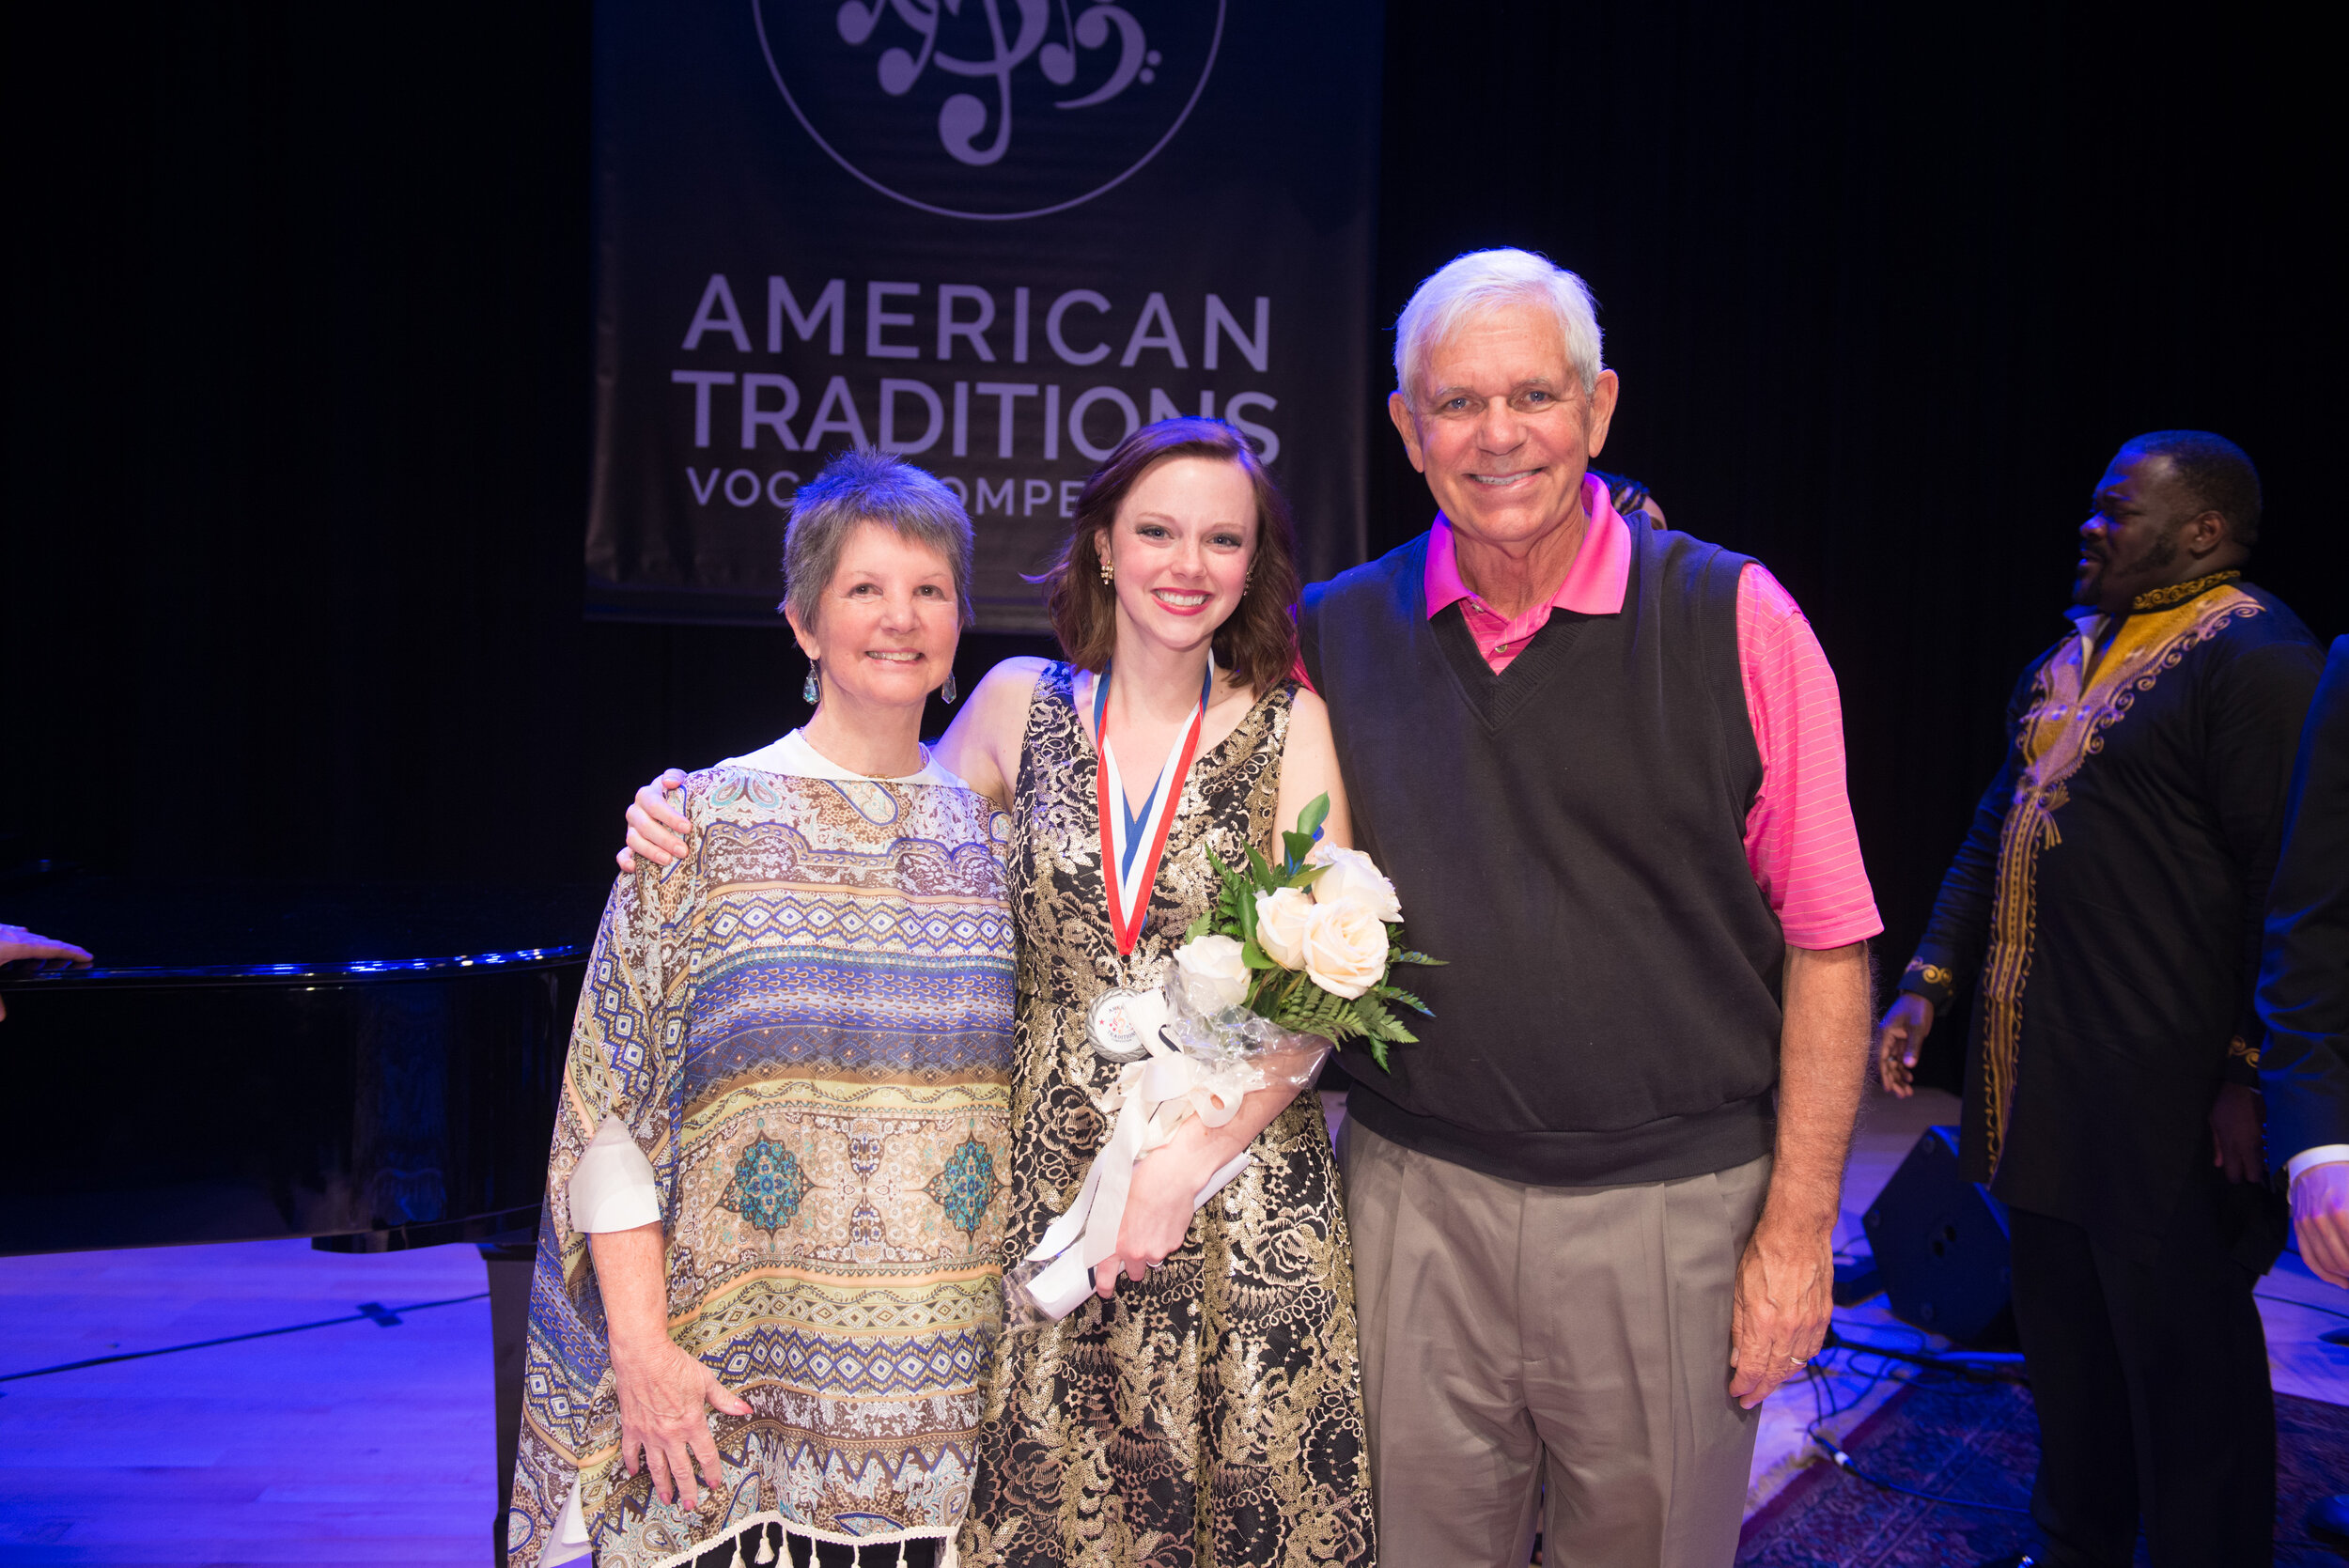 2019 Silver Medalist Emily Yocum Black and her sponsors, Melissa and Jim Emery.